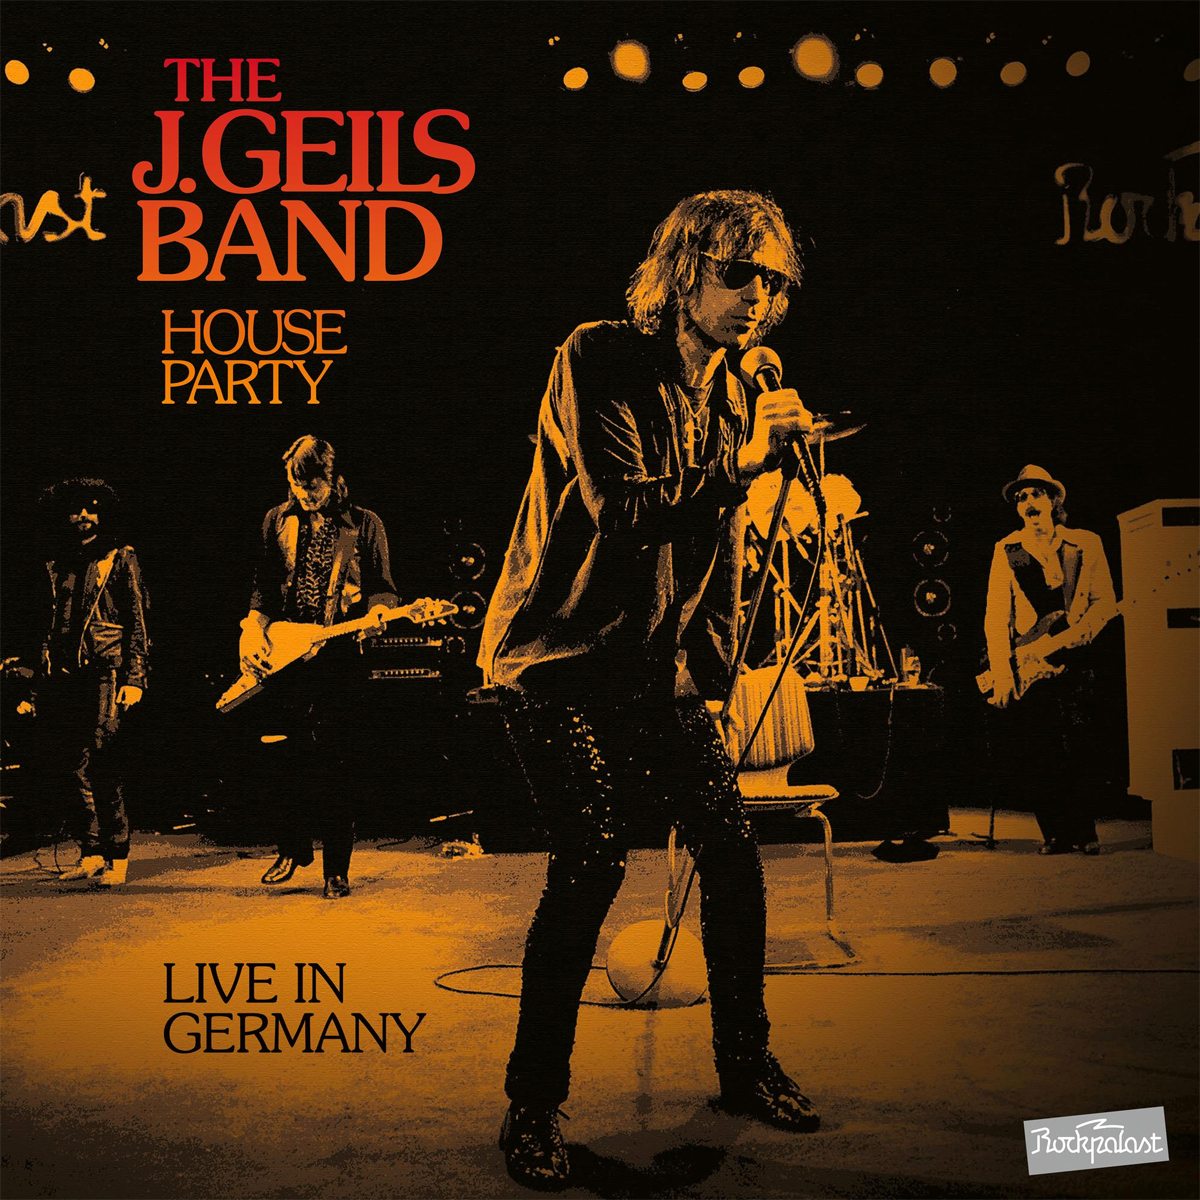 The J. Geils Band House Party: Live in Germany Numbered Limited Edition 2LP (Orange Vinyl)